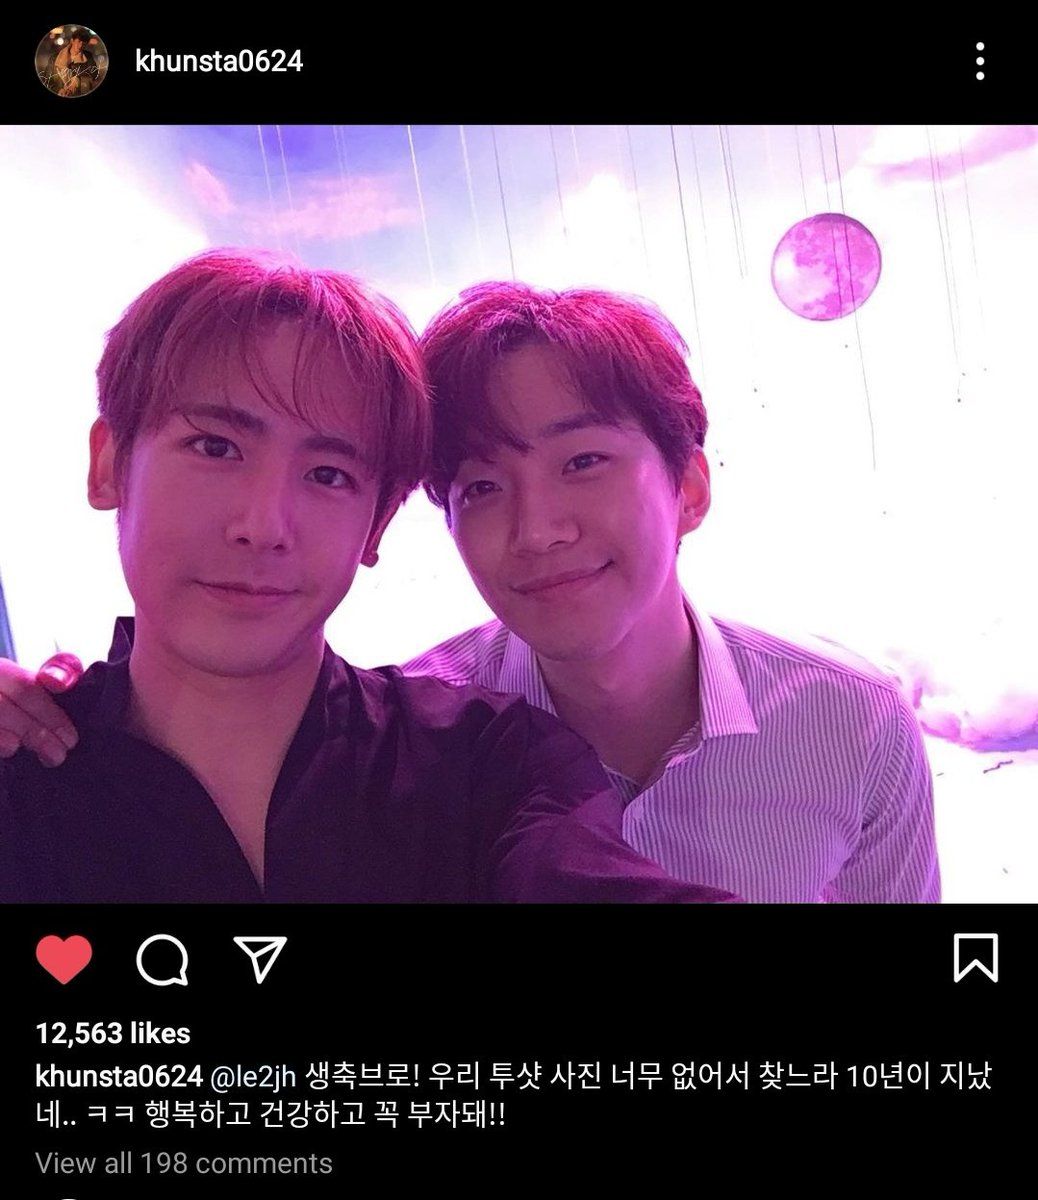 [Eng Trans] Nichkhun Instagram update with Junho ❤️💛  Happy birthday bro! 10 years have past, and we don't really have photos of the 2 of us.. kk be happy, healthy and wealthy!!  ()  #HappyJunhoDay #준호라는_눈꽃이_내려온_날 #준호야_해피벌스데잊